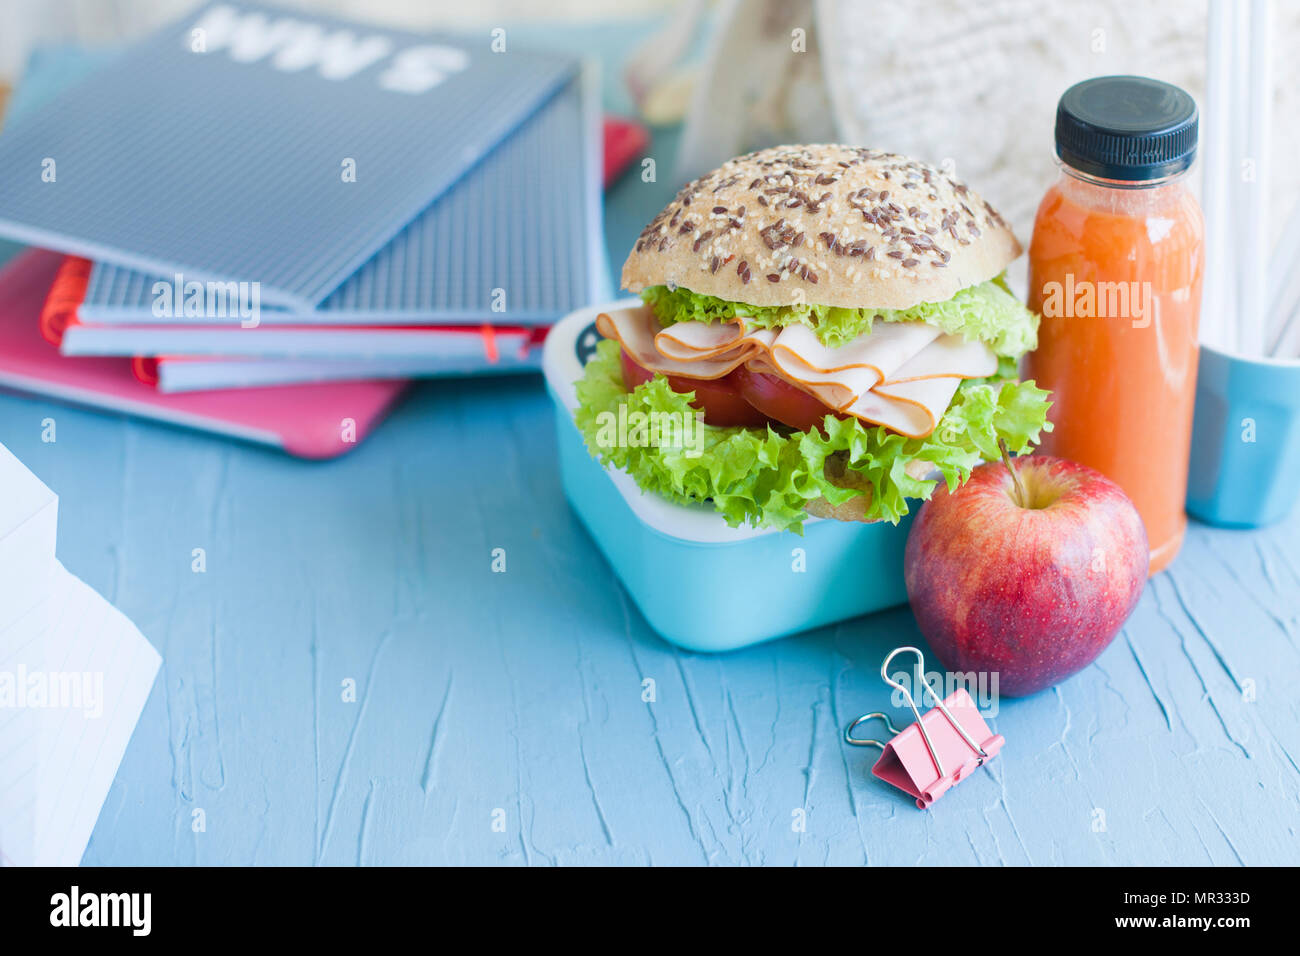 Lunch And Learn Stock Photos & Lunch And Learn Stock Images - Alamy